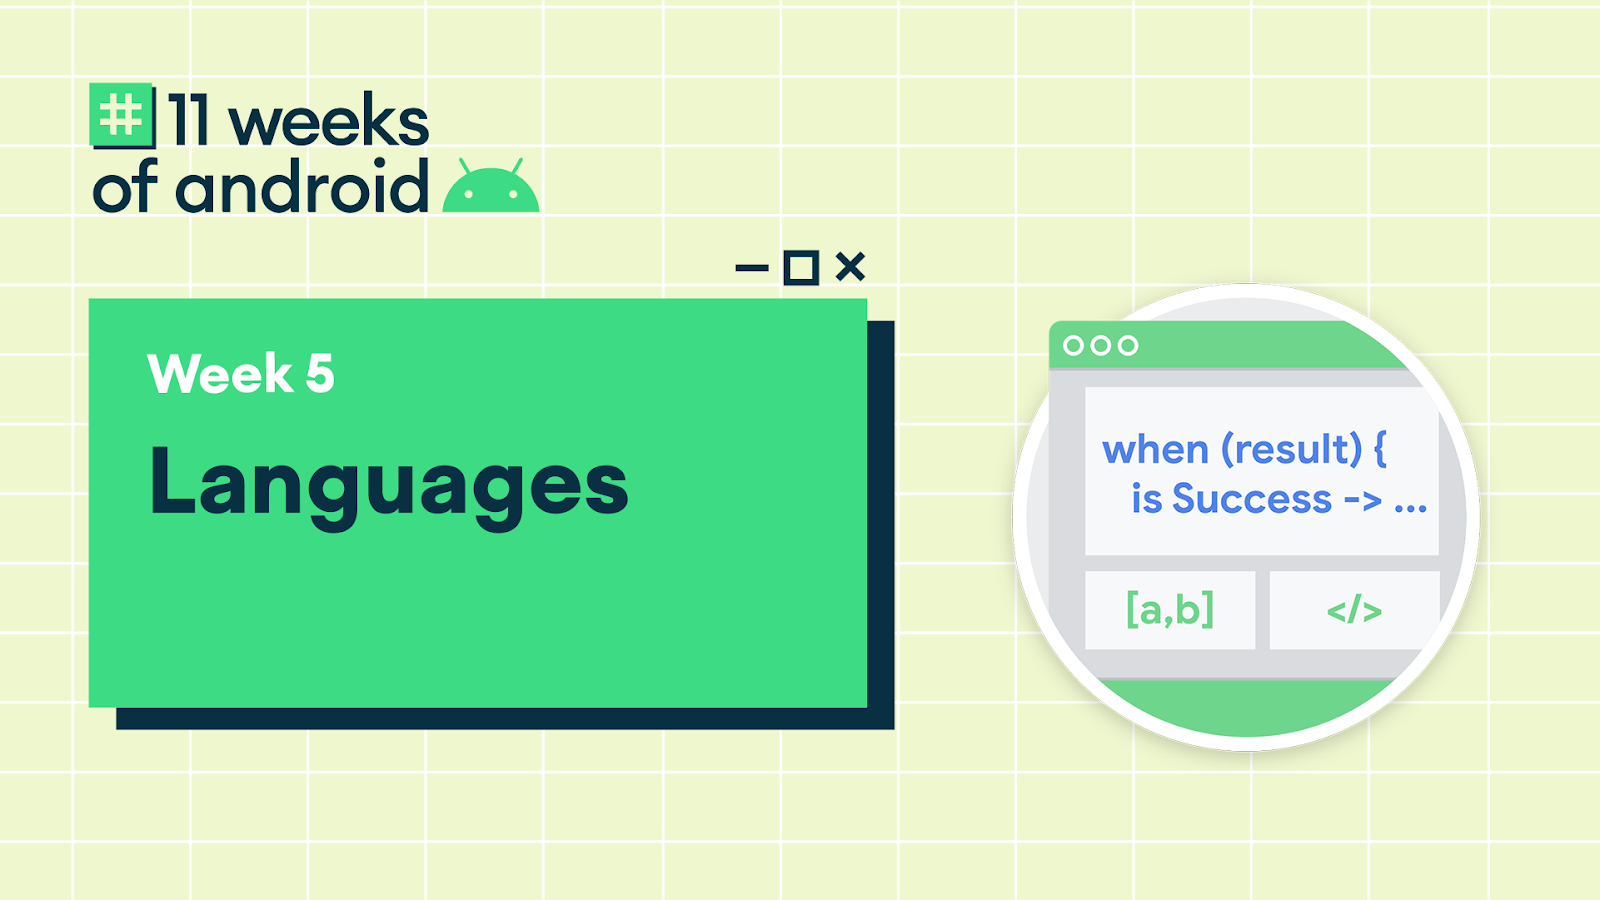 11 Weeks of Android, Week 5: Languages